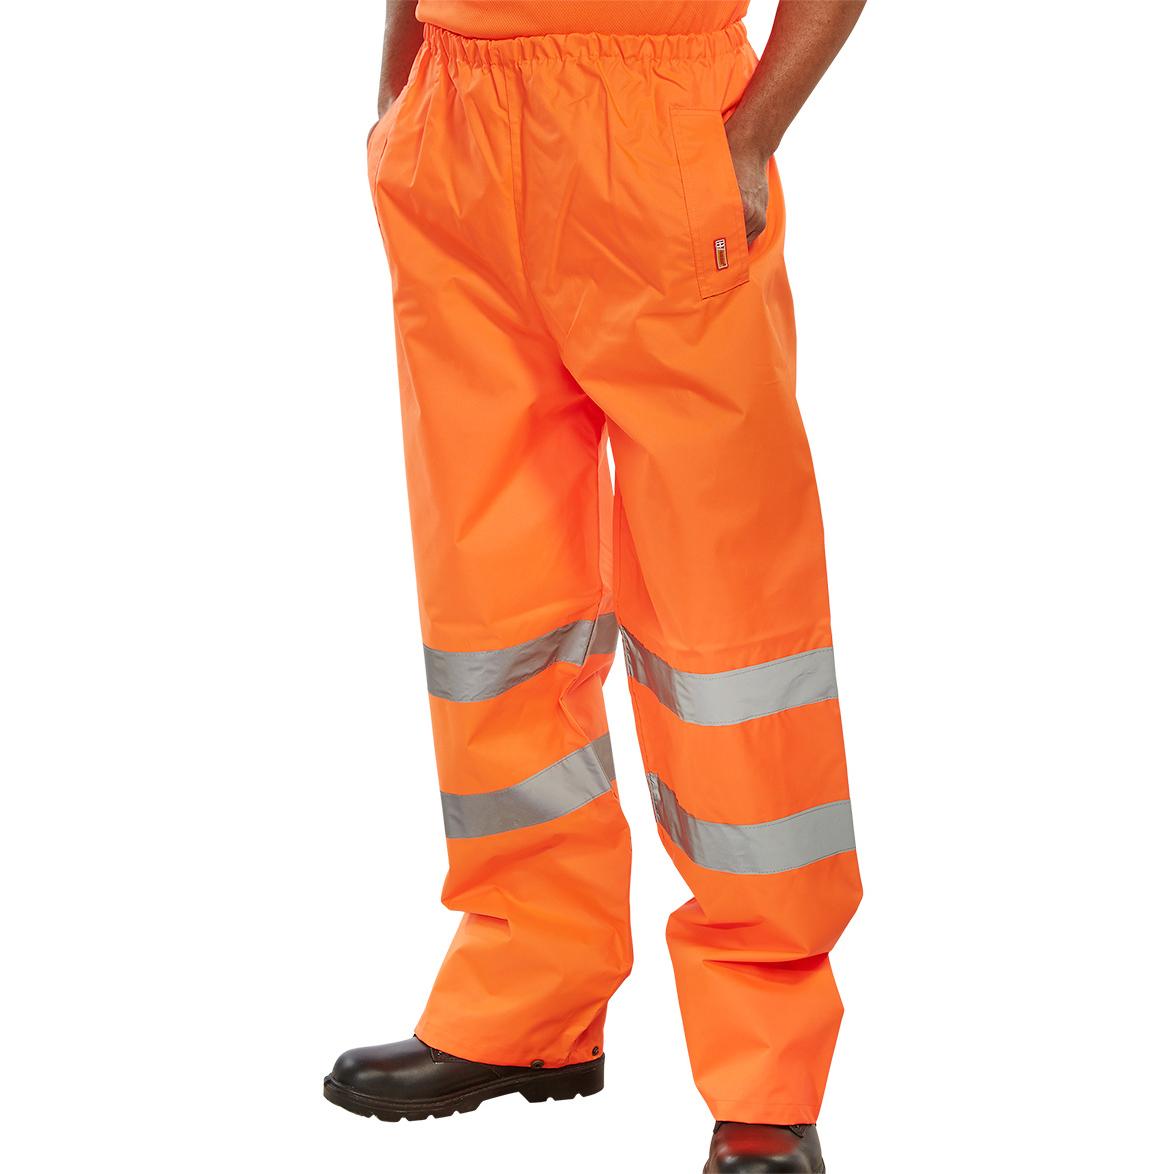 Ladies BSeen Traffic Trousers Hi-Vis Reflective Tape Small Orange Ref TENORS *Up to 3 Day Leadtime*